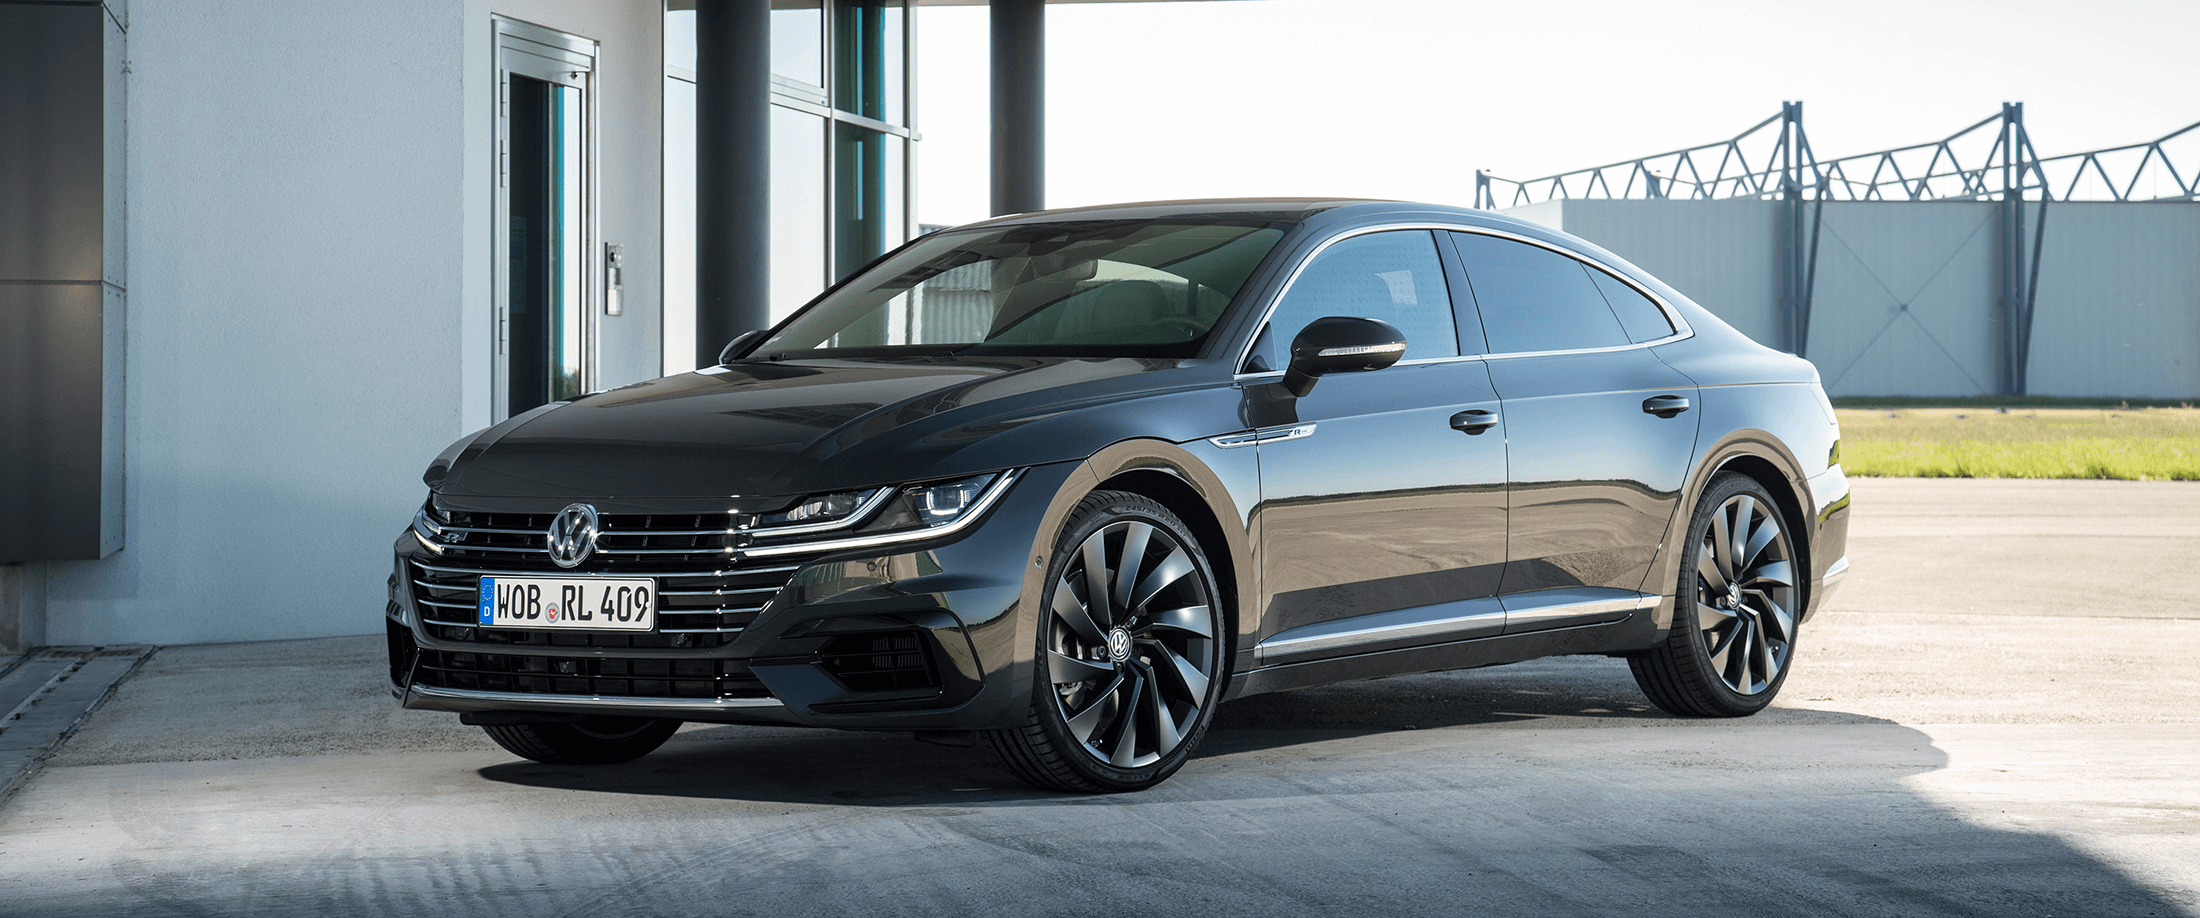 AVP Autoland TEST AND DRIVE: VW ARTEON